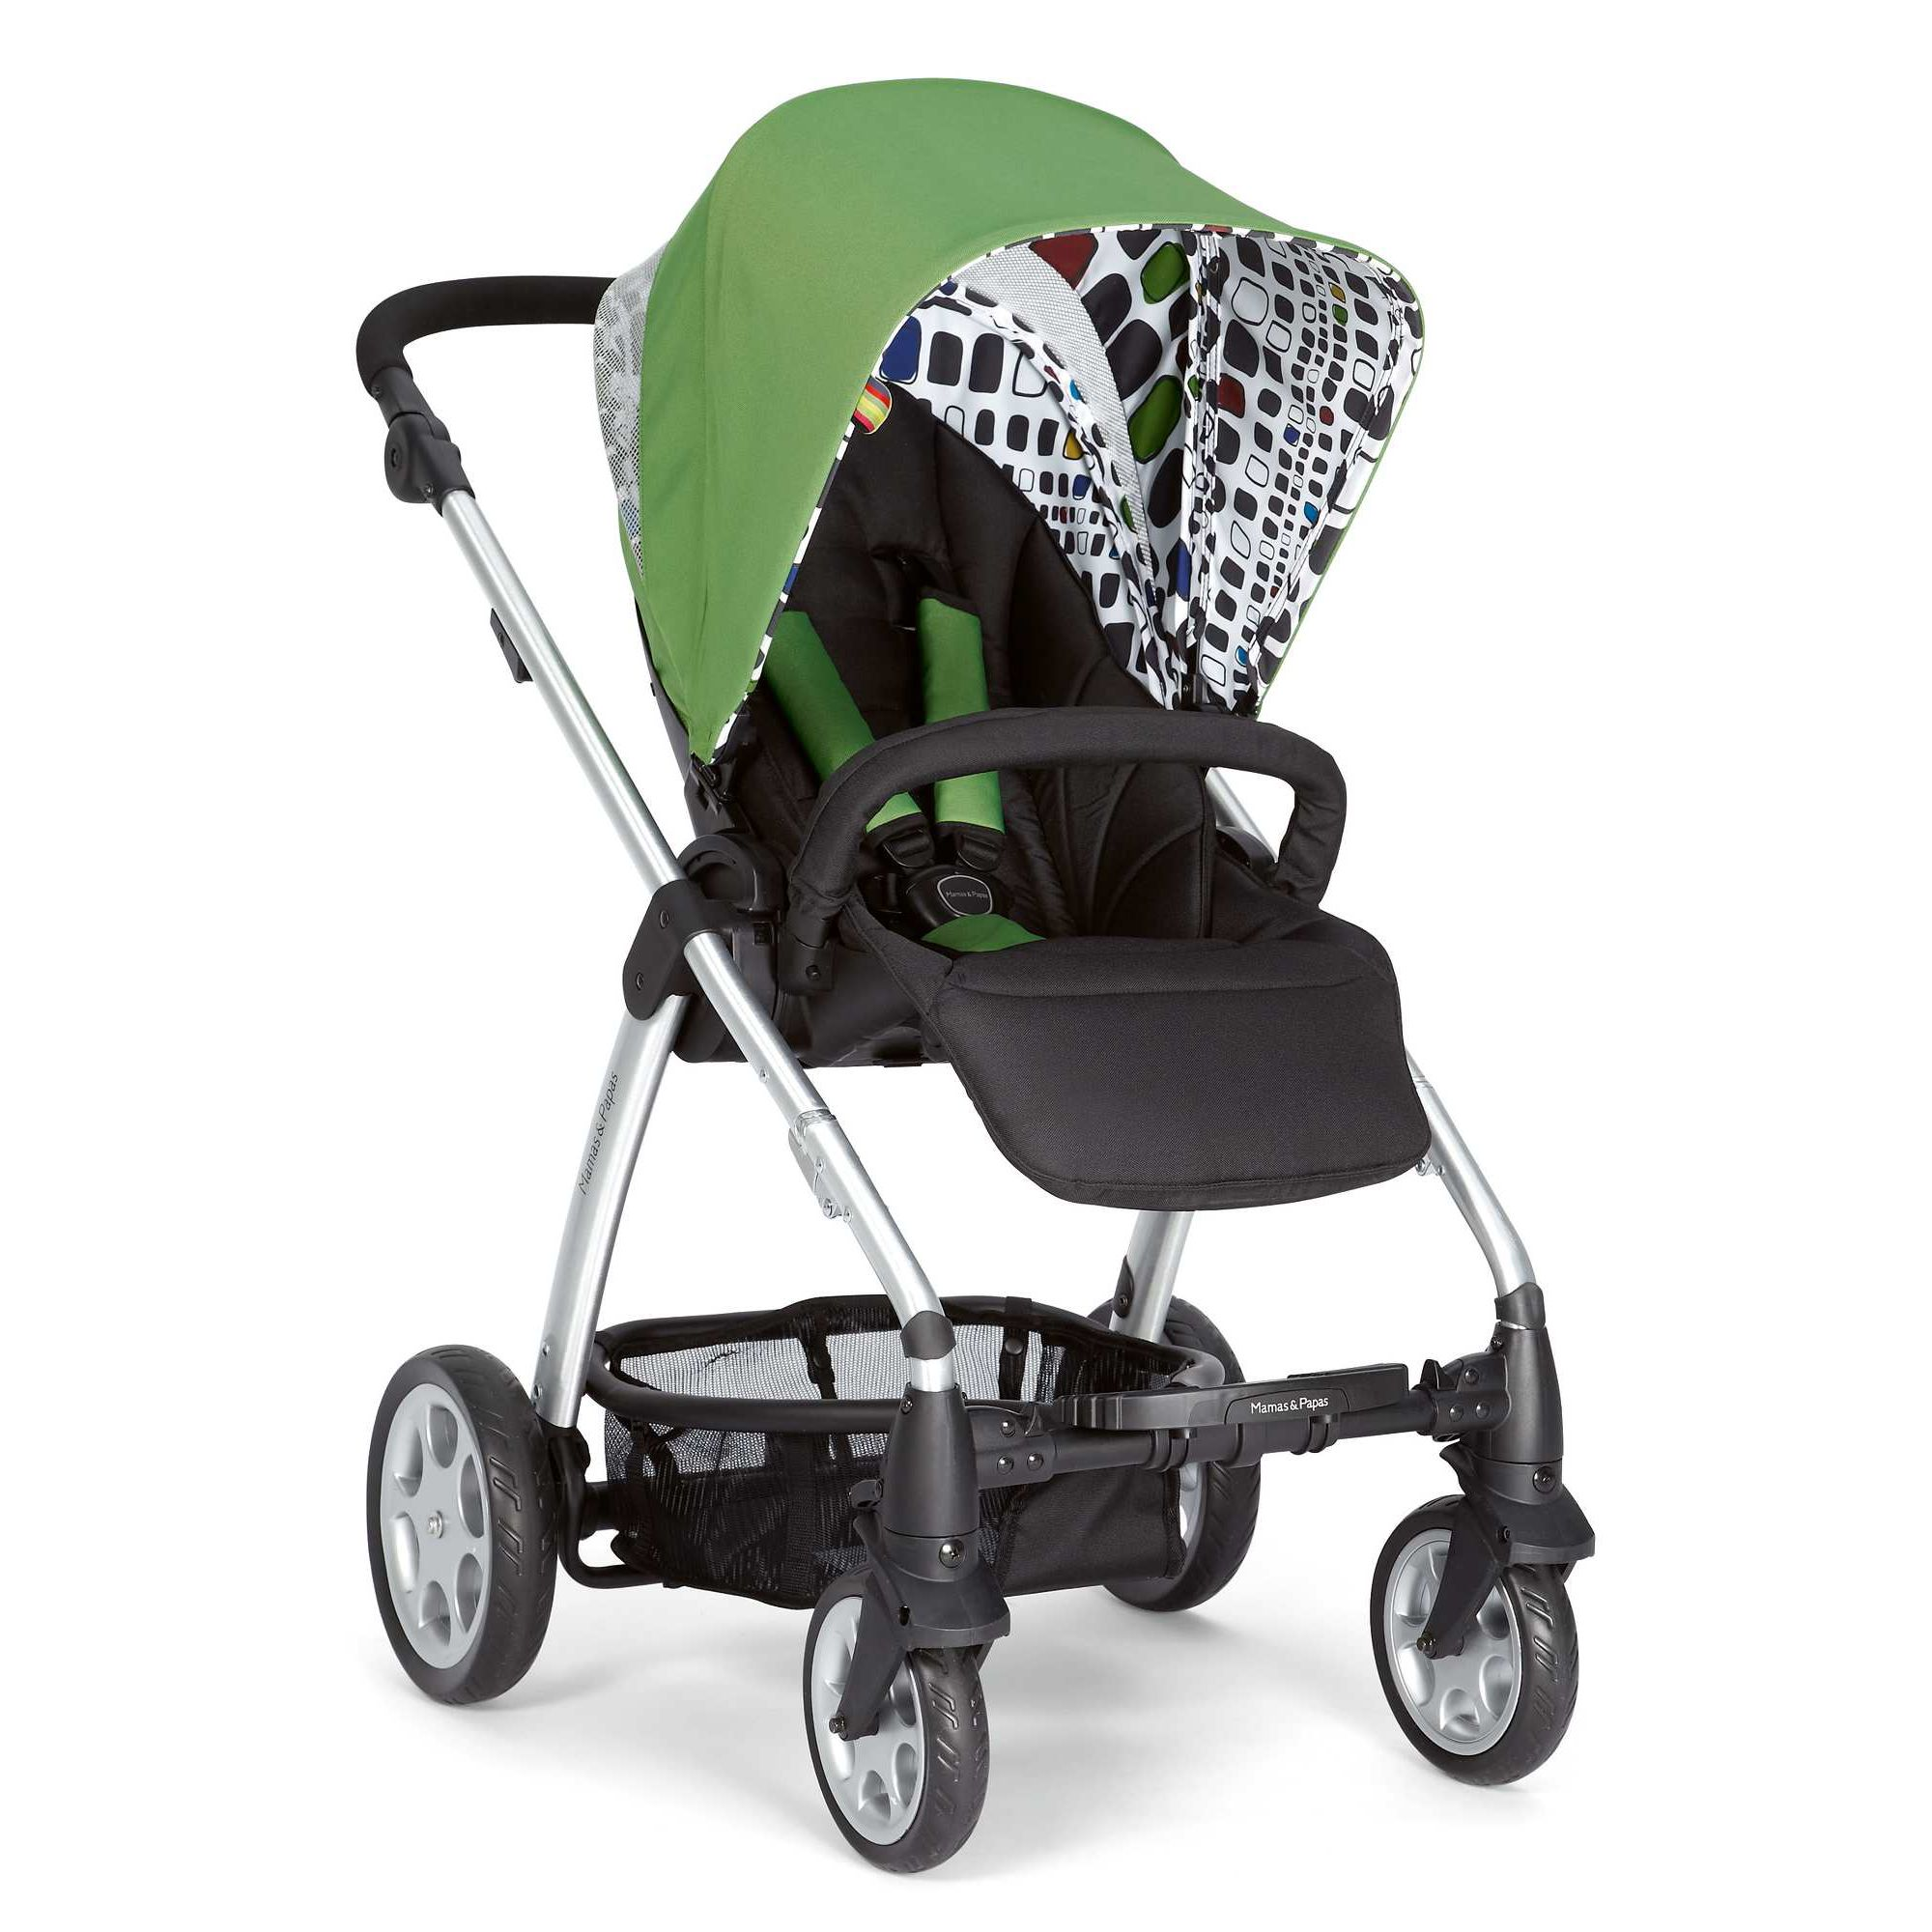 Mamas & Papas - Sola 2 in 1 - Green at Tesco Direct